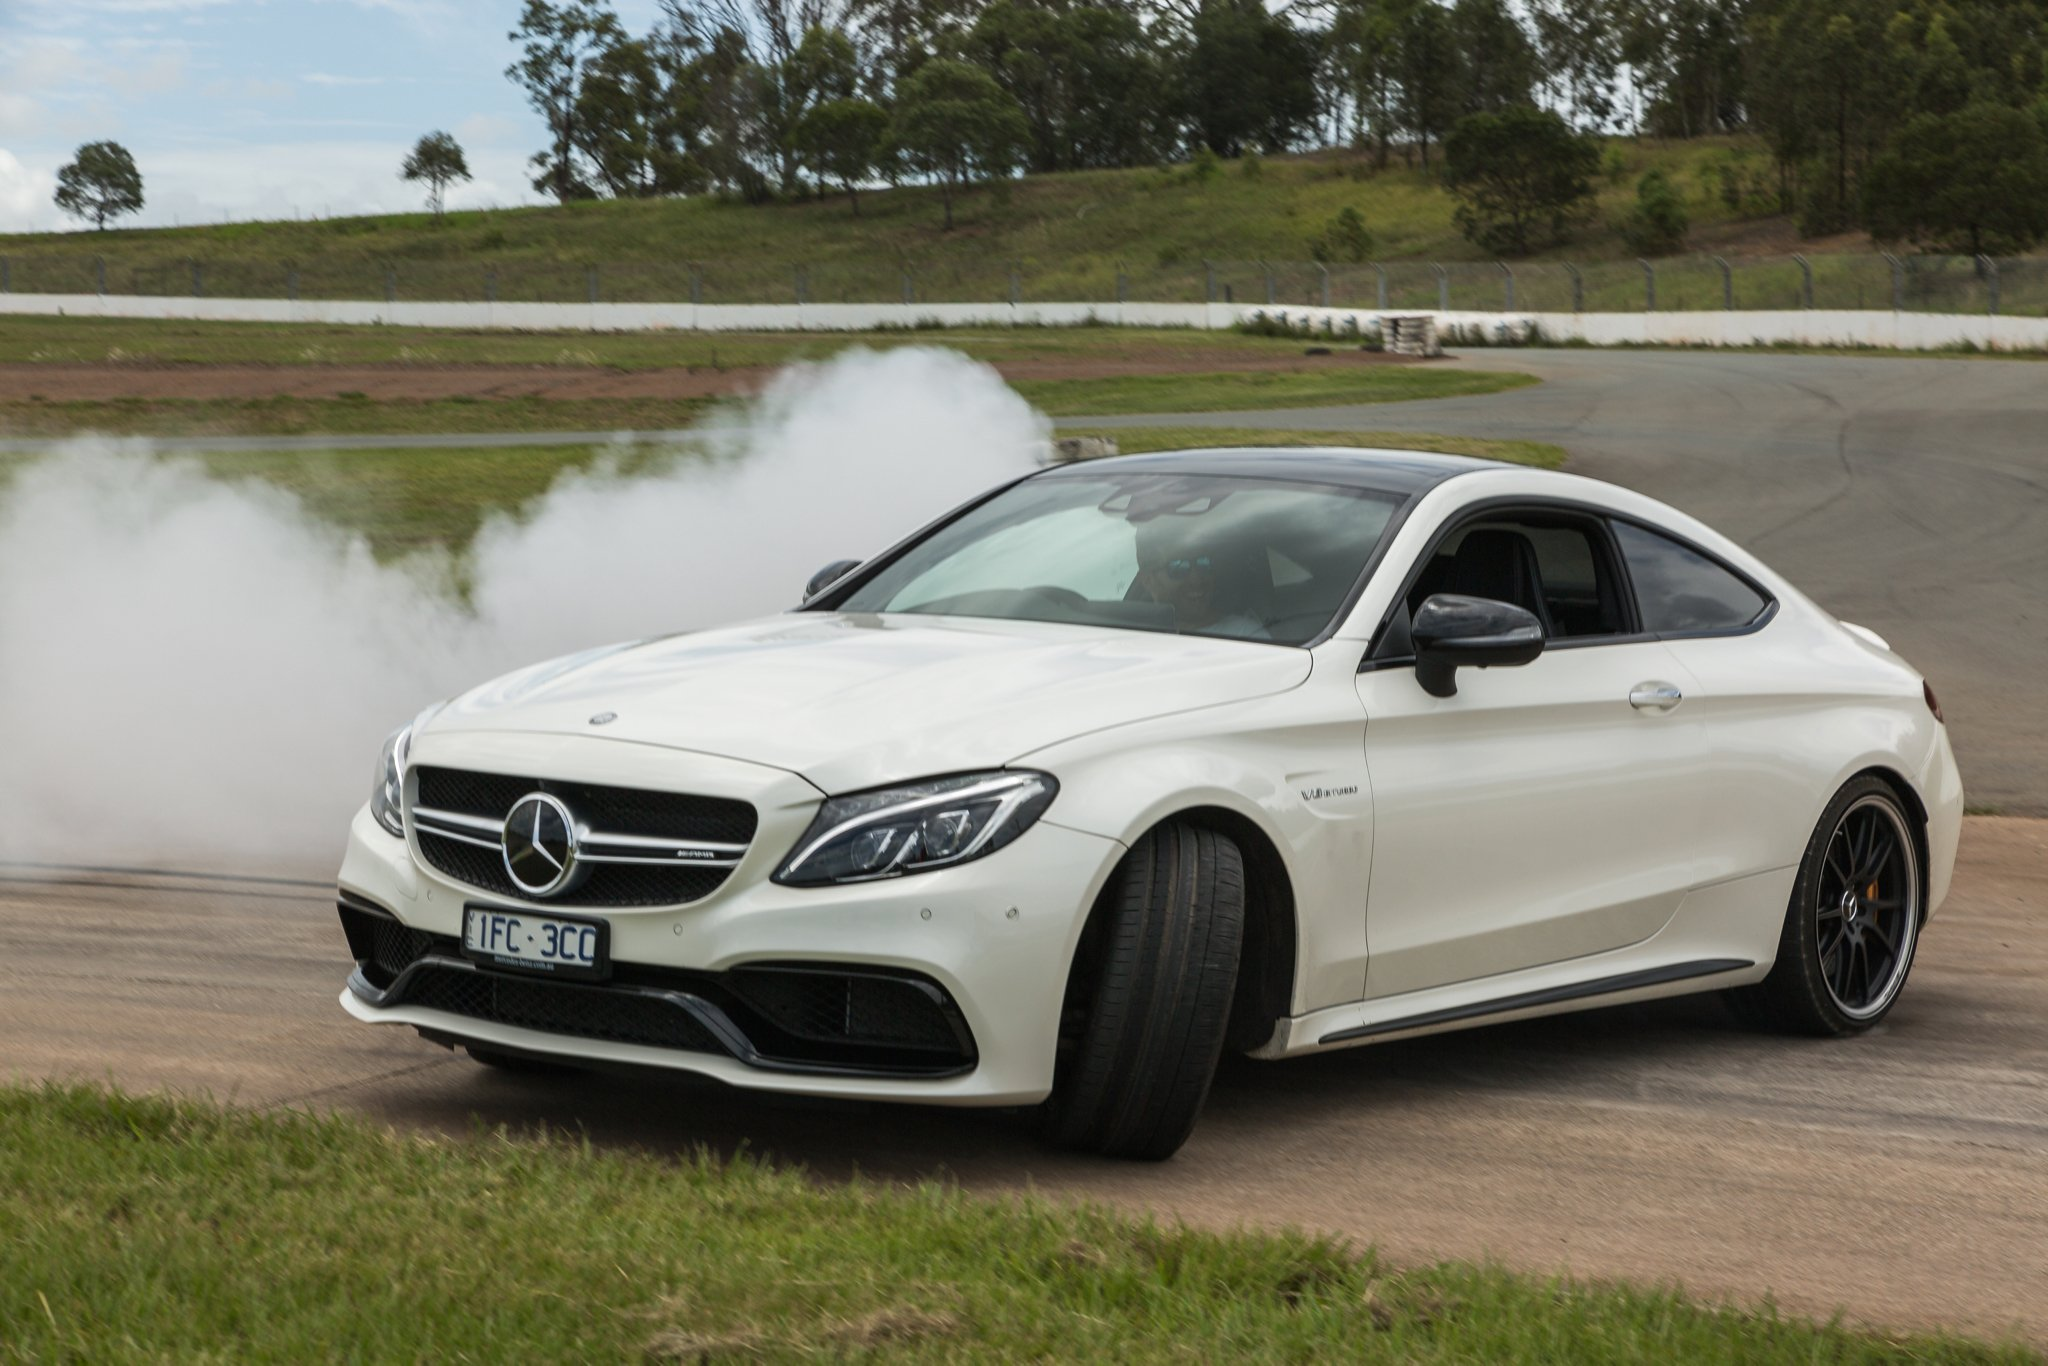 C63 Amg Coupe 2018 >> BMW M4 Competition v Mercedes-AMG C63 S Coupe track comparison - Photos (1 of 53)